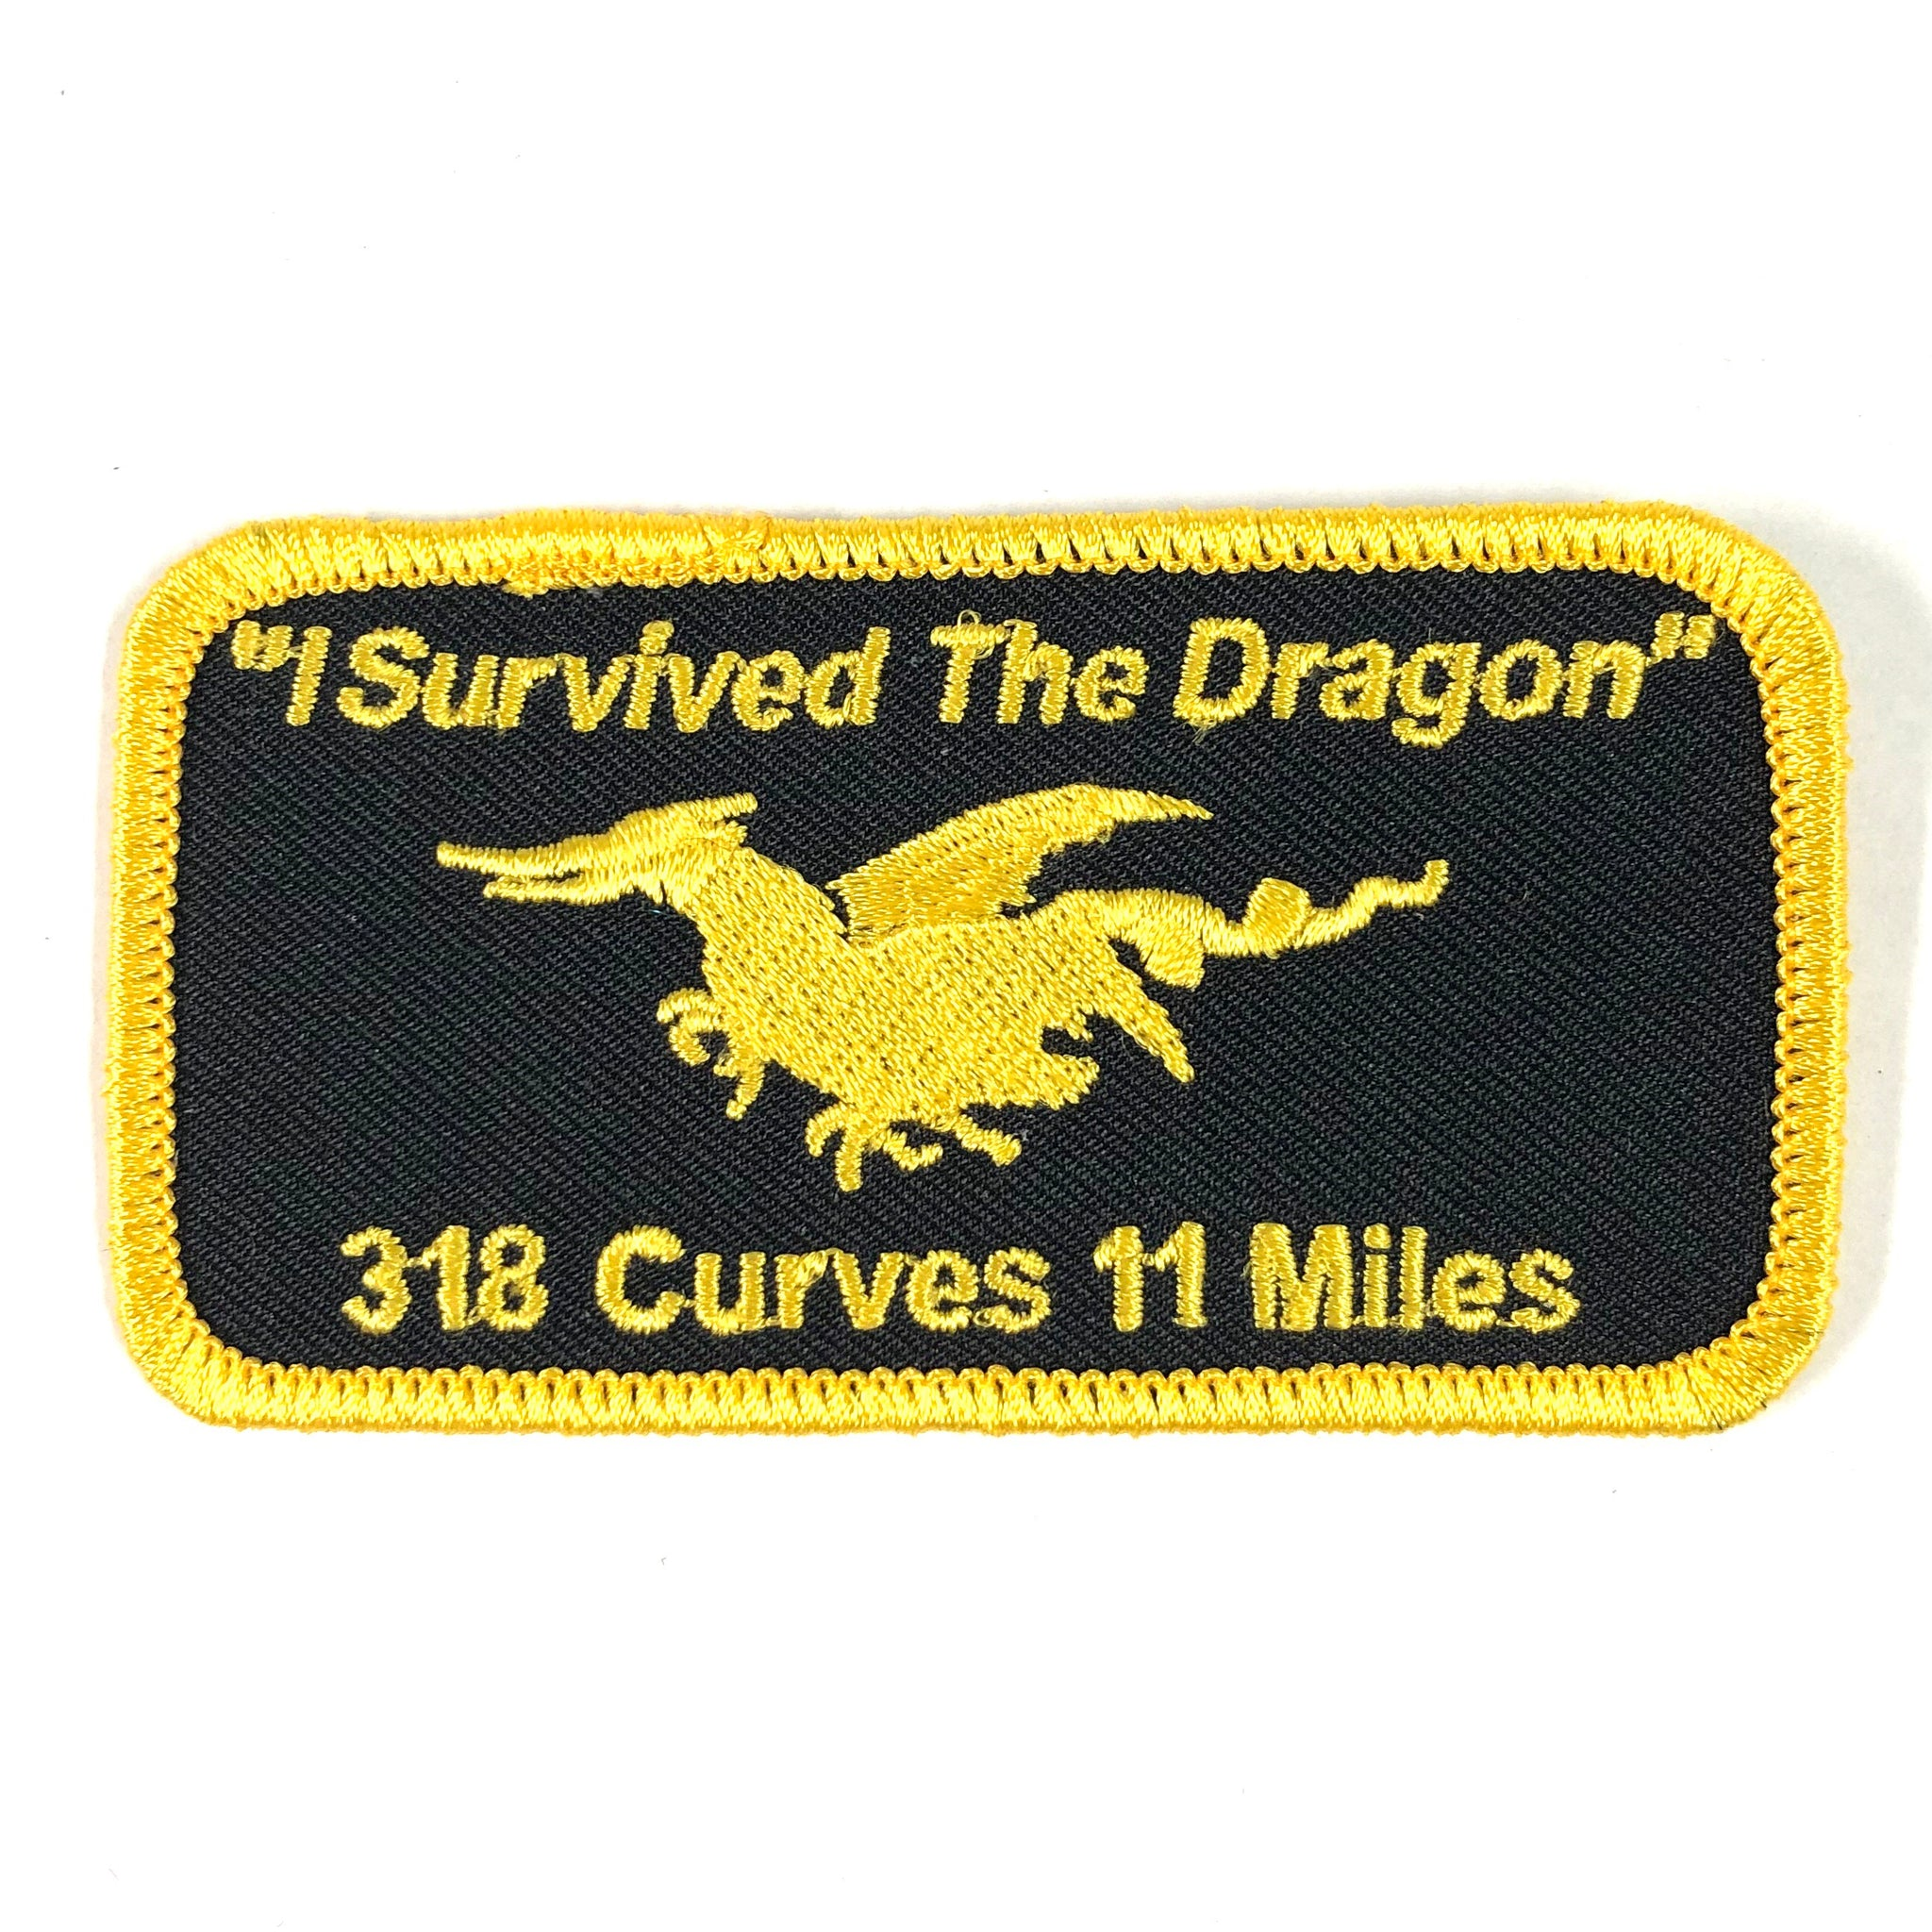 I Survived Small Yellow Patch